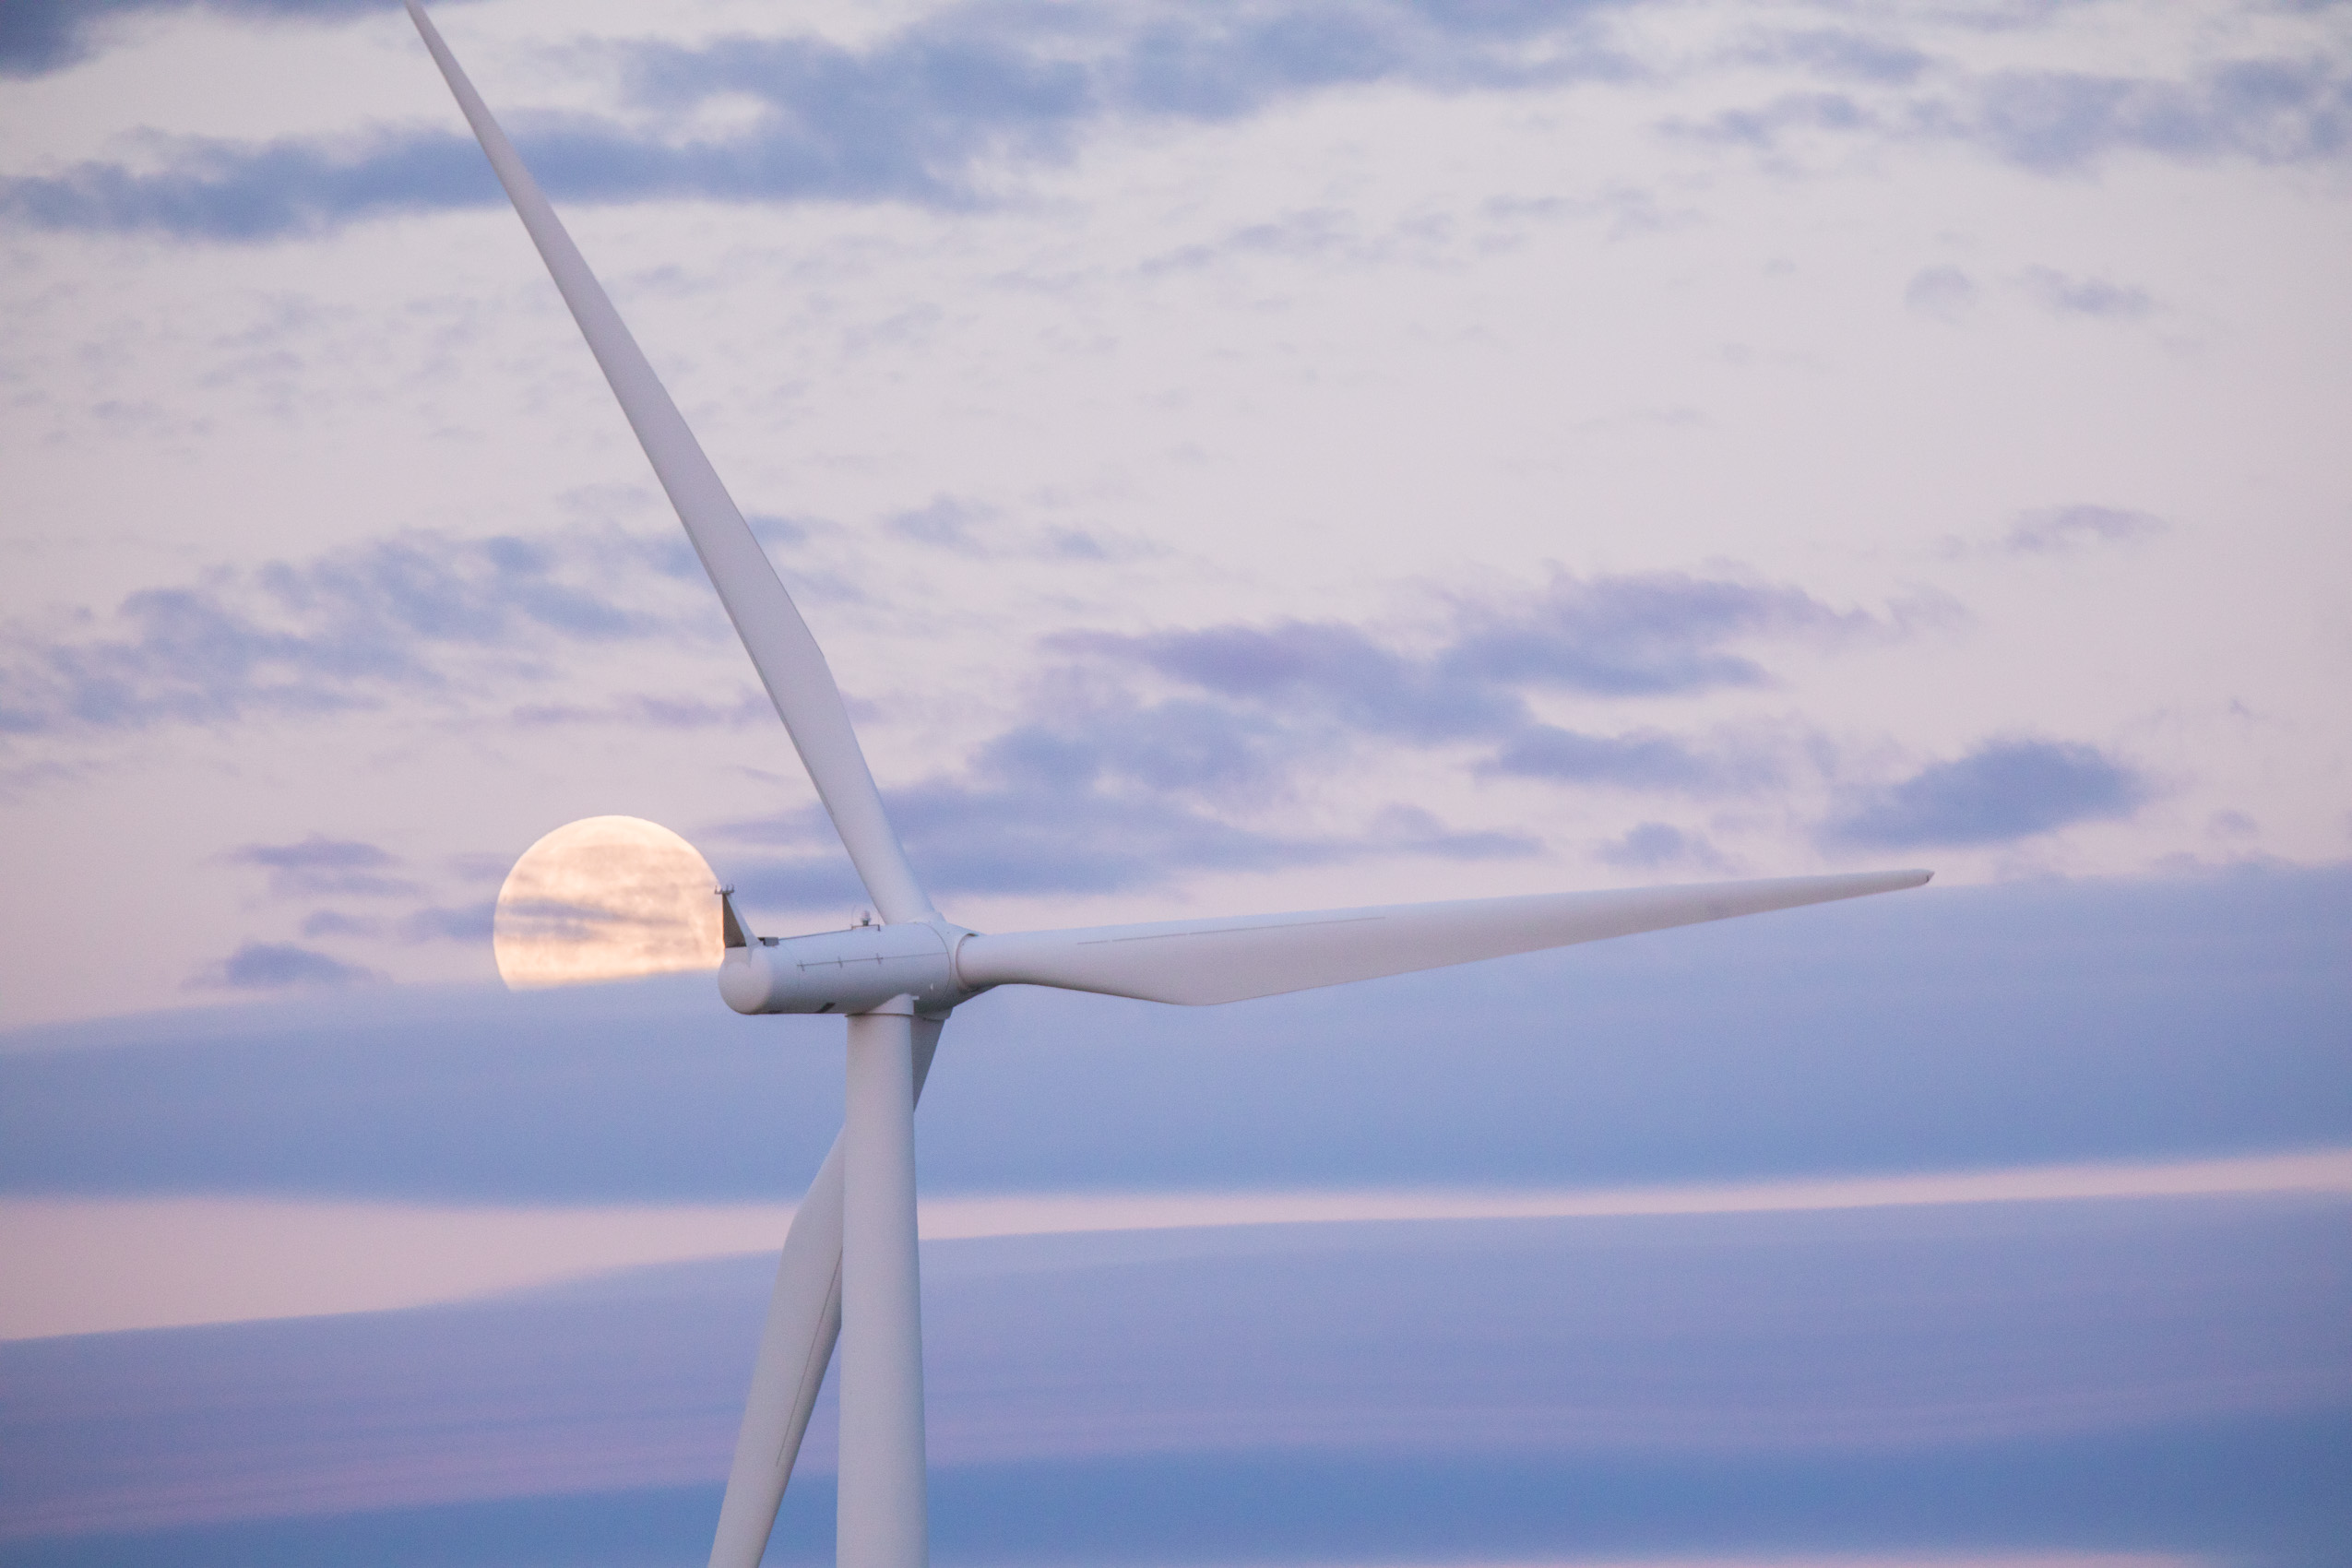 moon and clouds with wind turbine